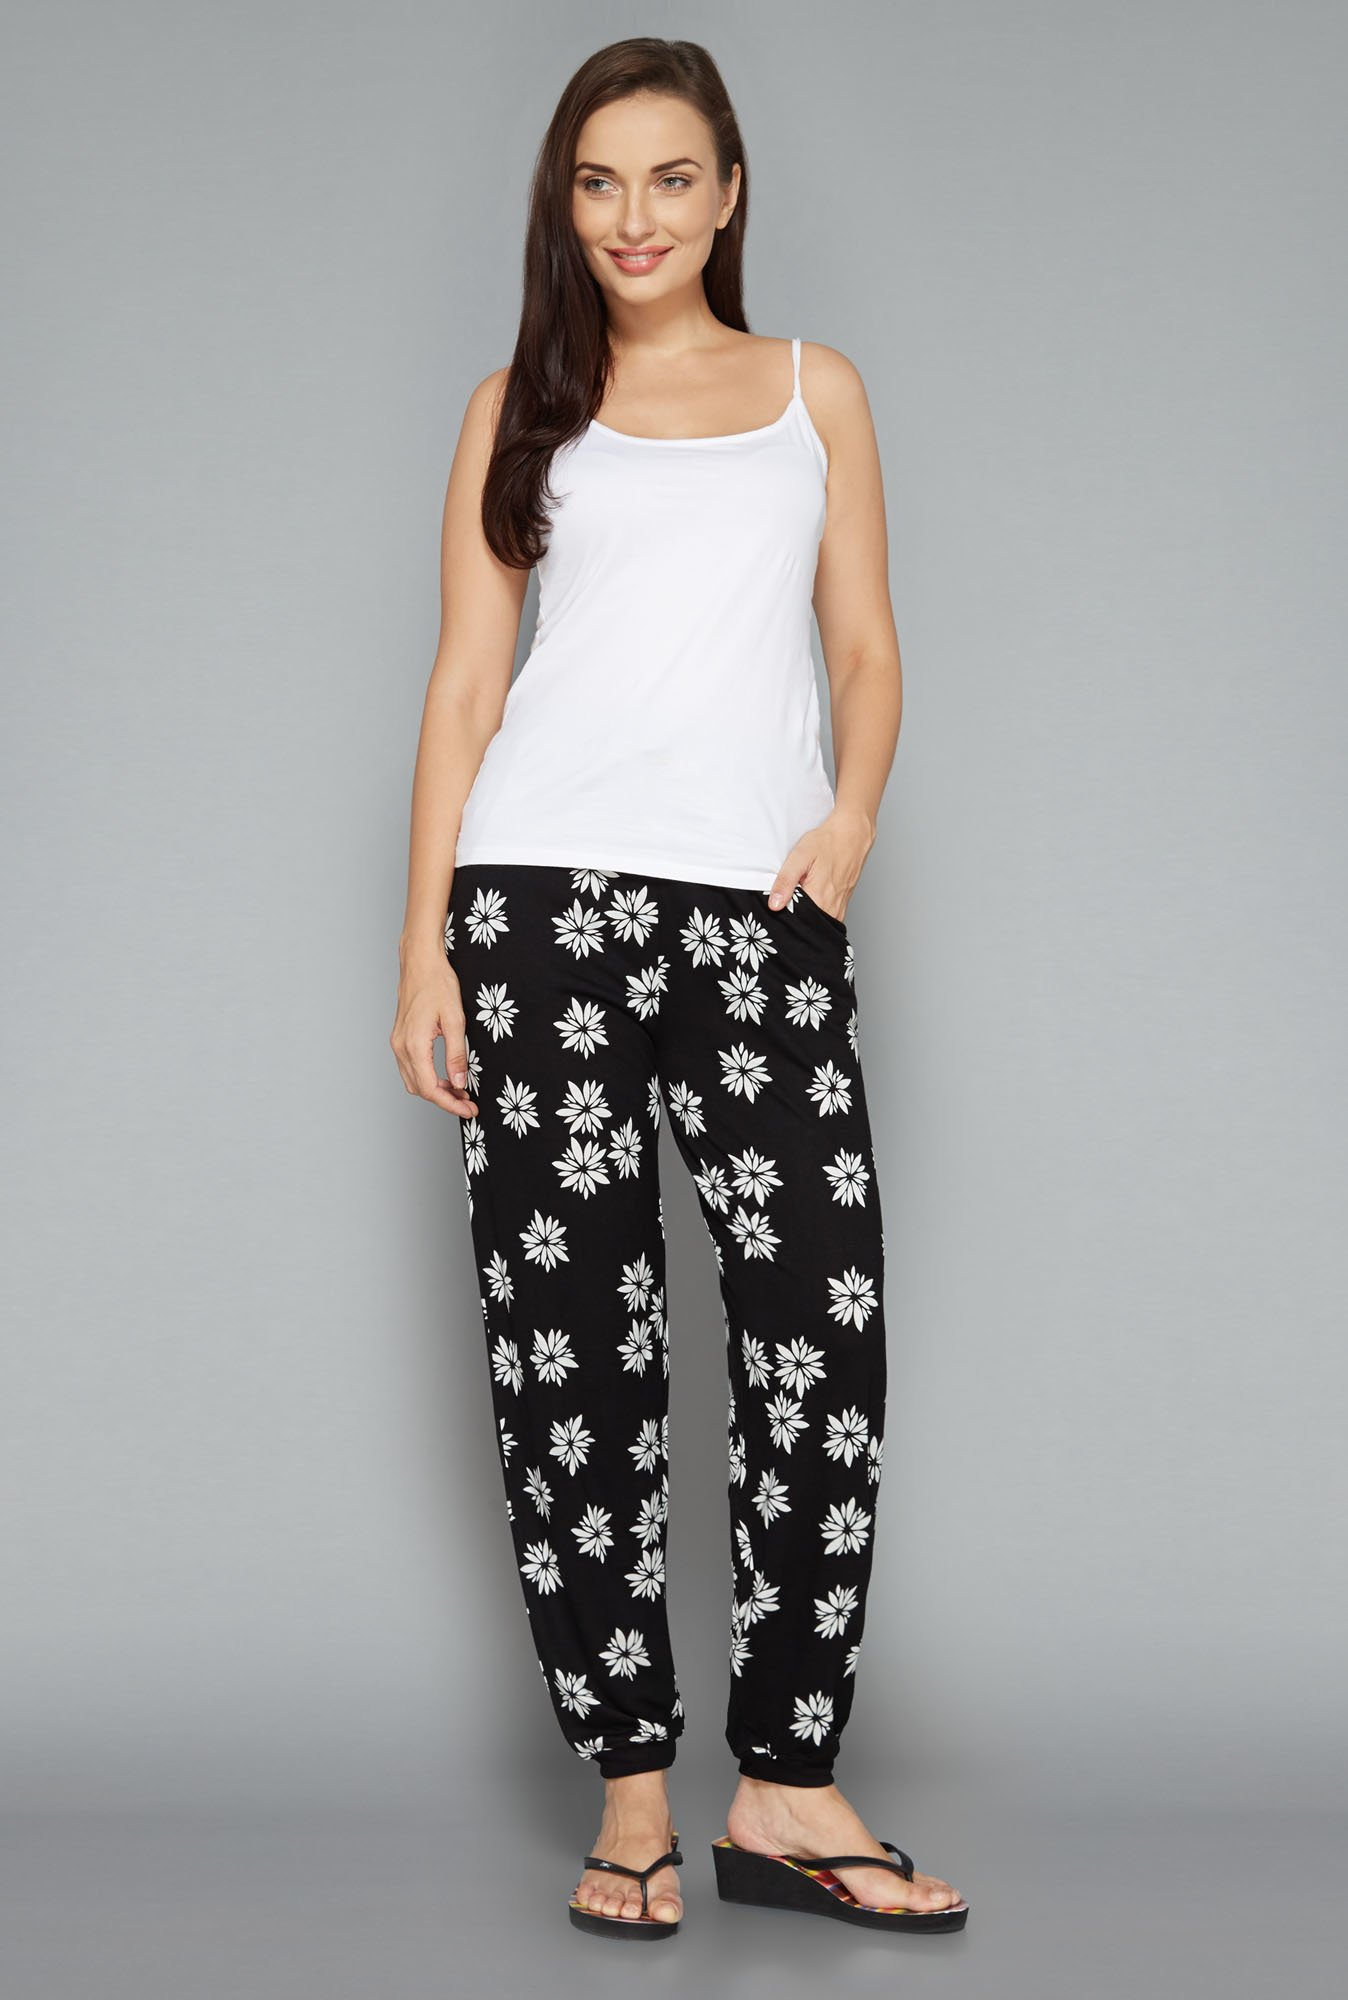 Intima by Westside Black Floral Pyjamas